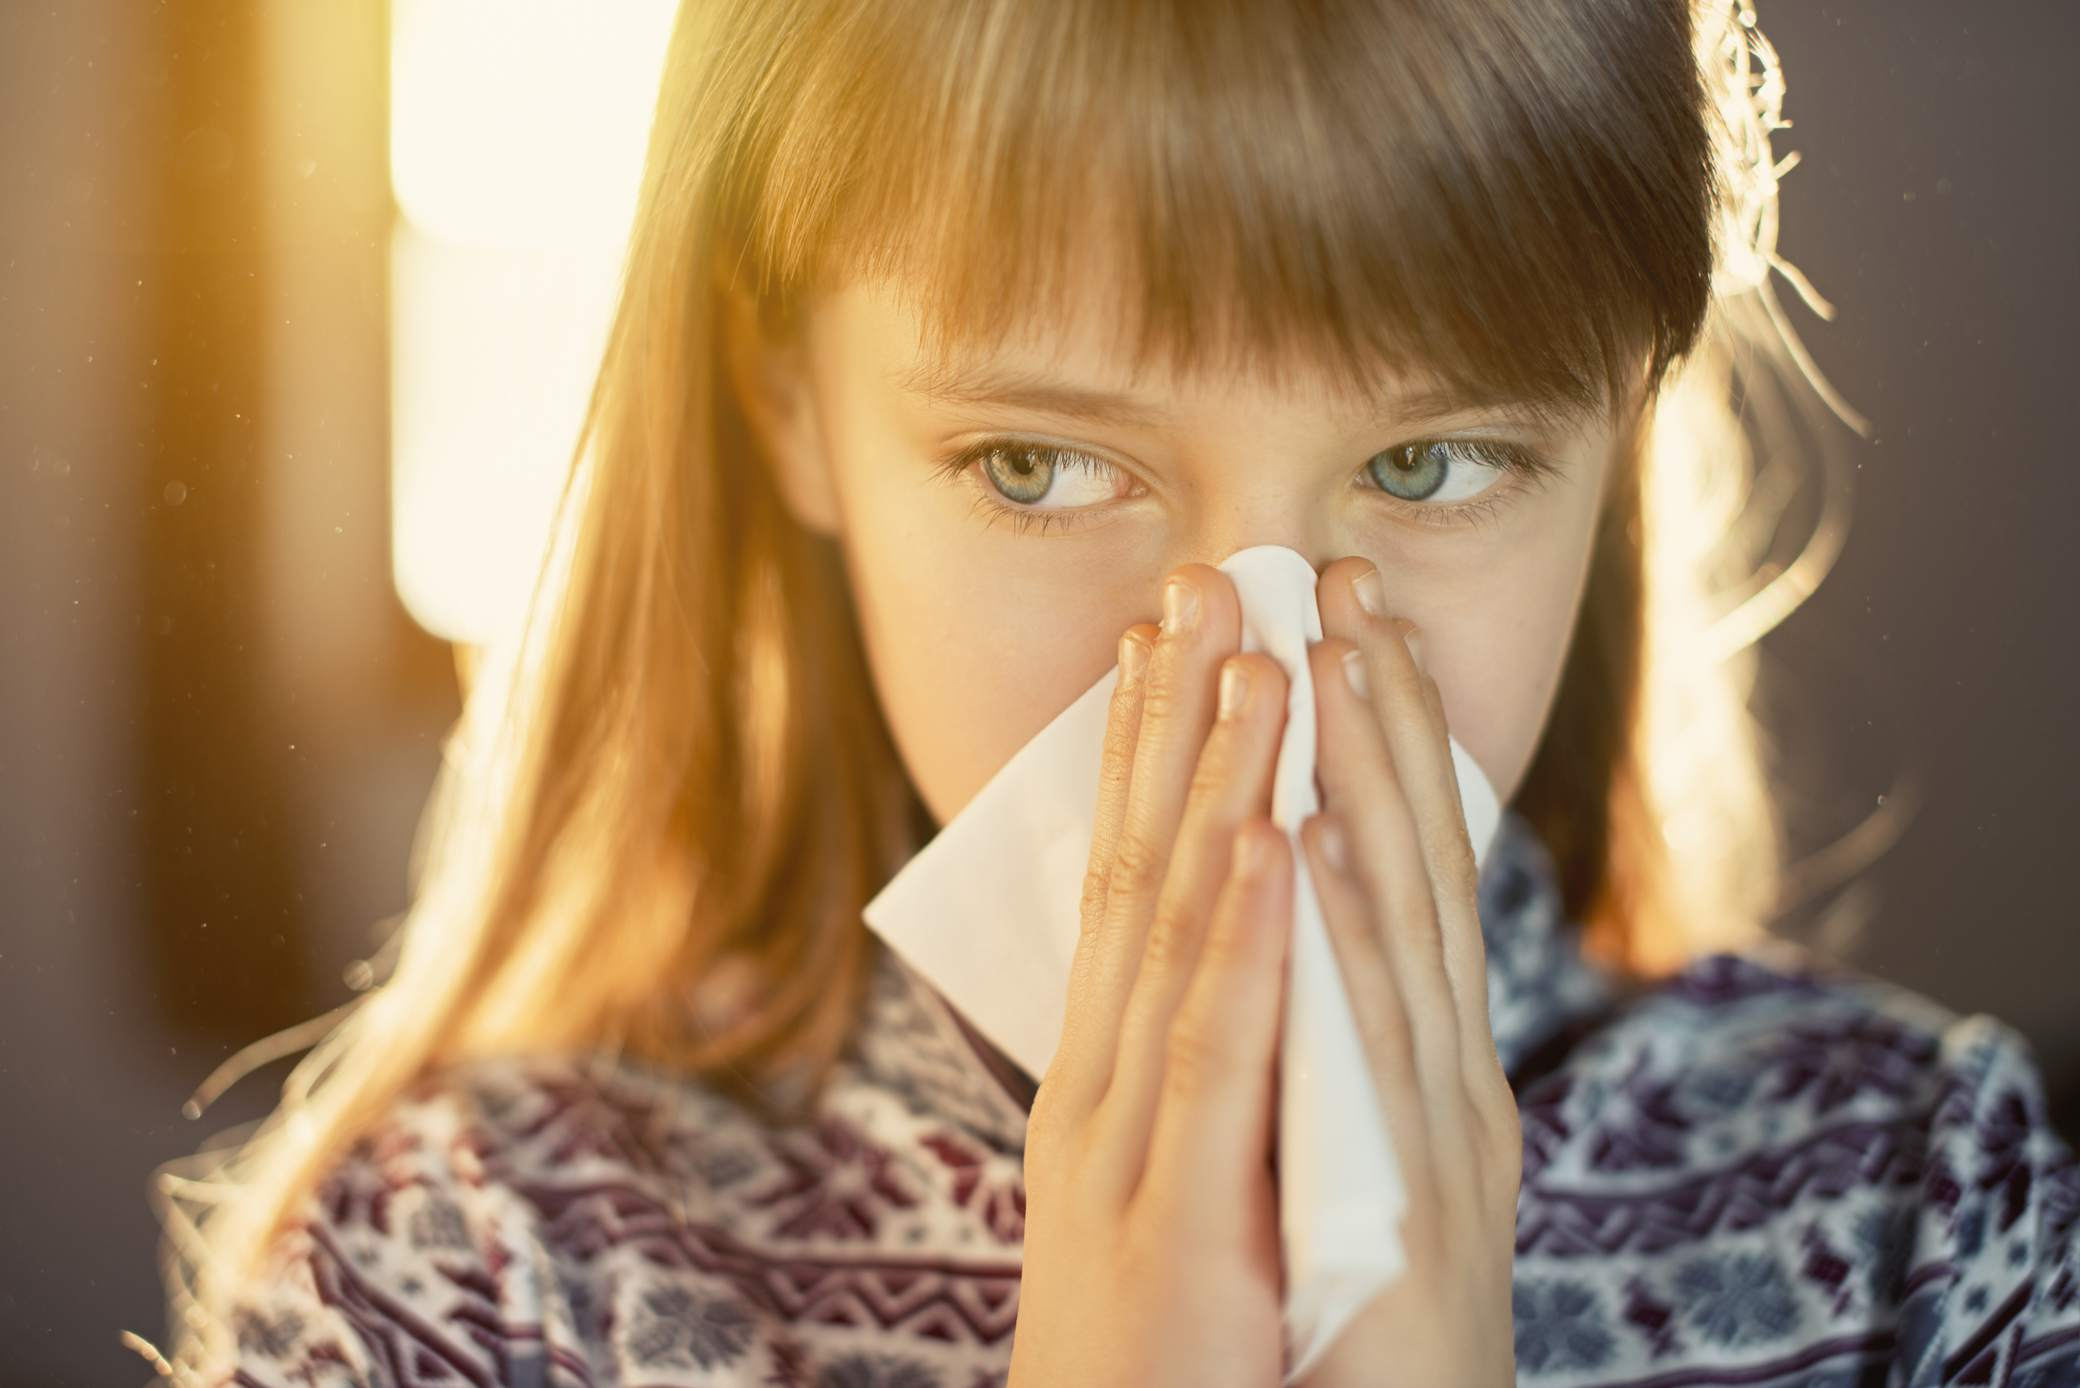 dust-allergy---little-girl-cleaning-runny-nose-539258825-5ad33b041f4e1300387aa098